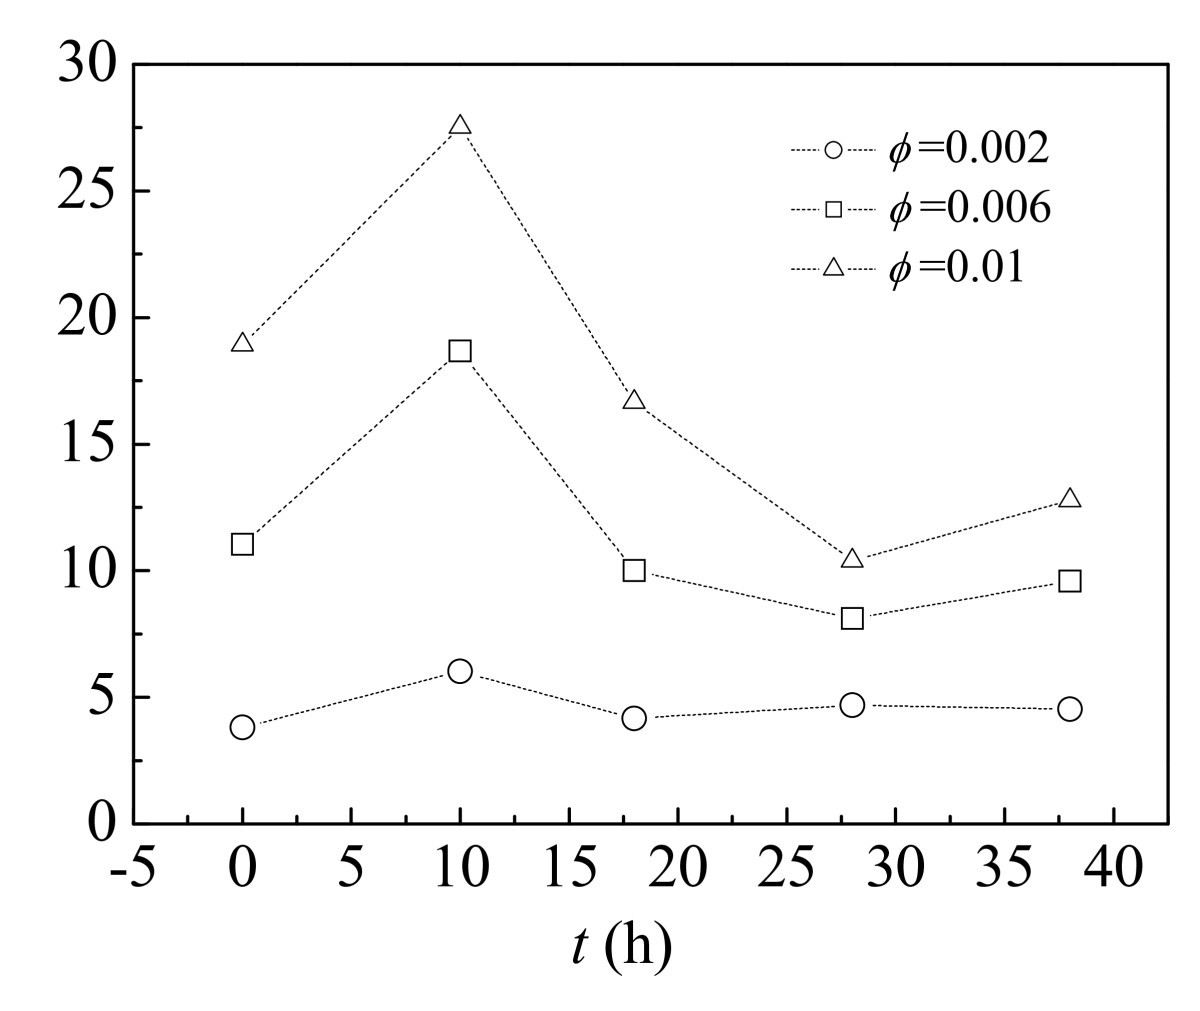 http://static-content.springer.com/image/art%3A10.1186%2F1556-276X-6-124/MediaObjects/11671_2010_Article_57_Fig6_HTML.jpg